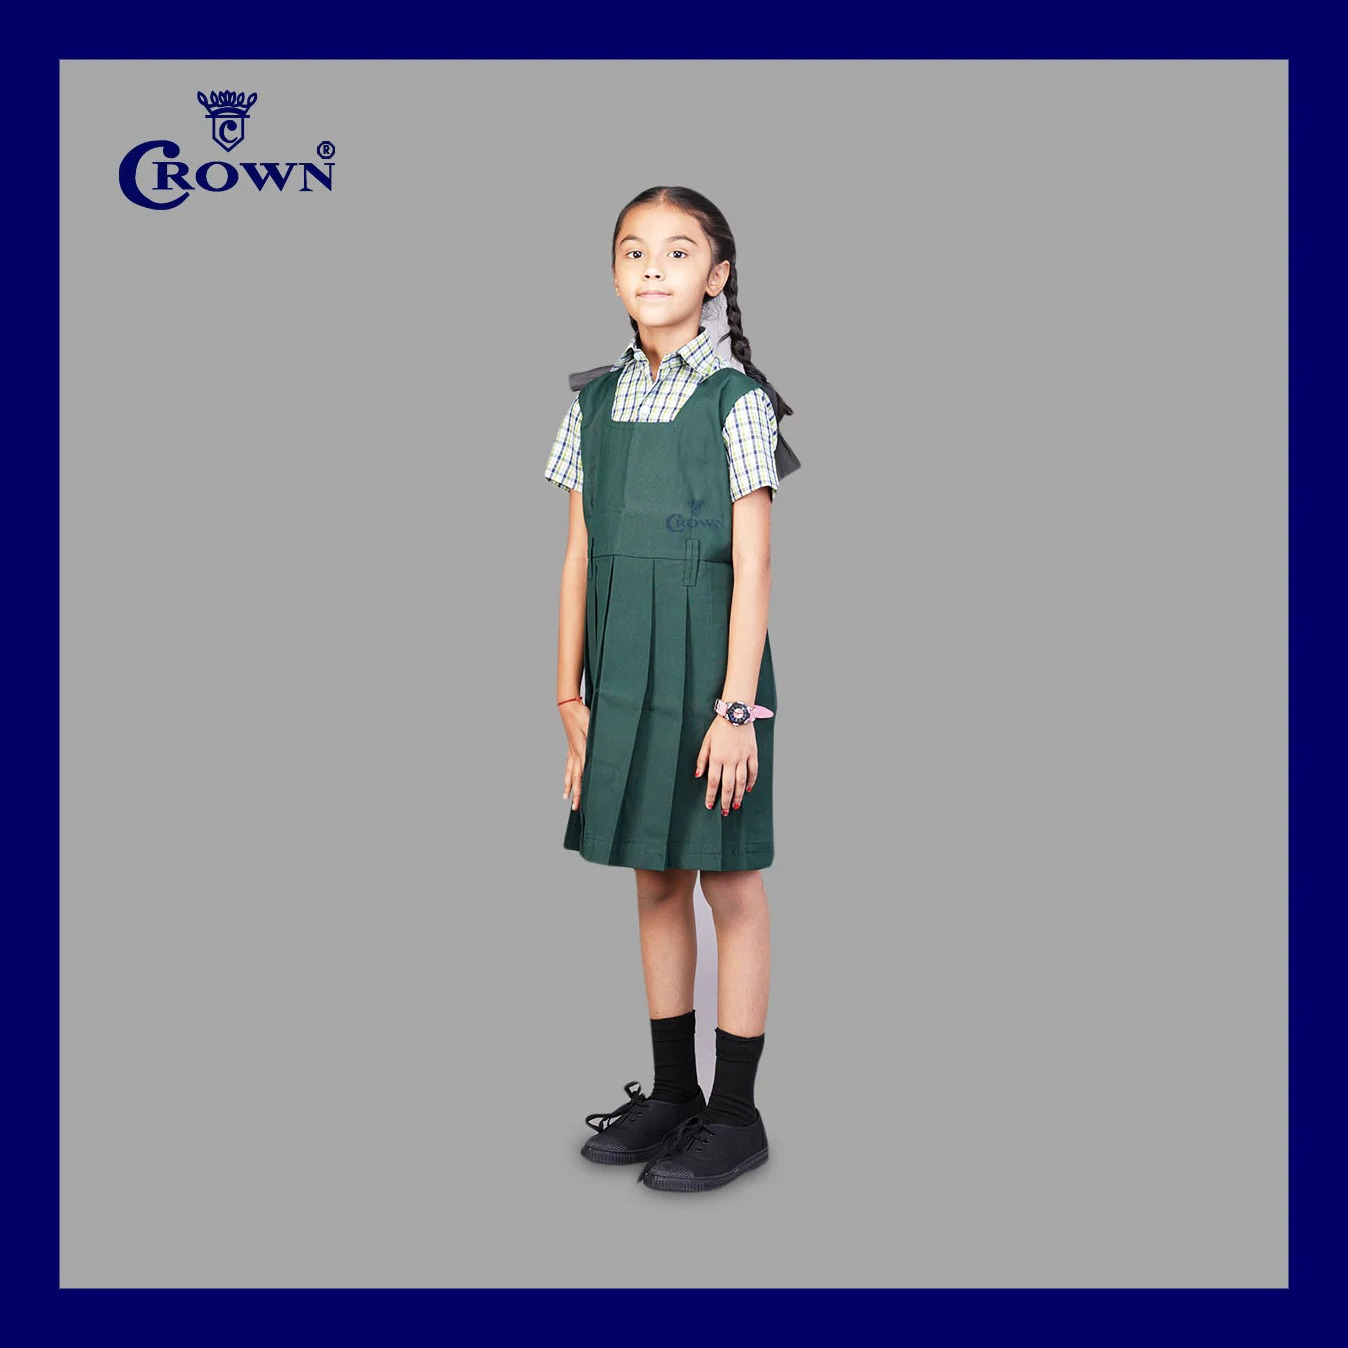 Crown TN Govt 1 - 5thStd Bottle Green Colour Pinafore (3-4 Years)